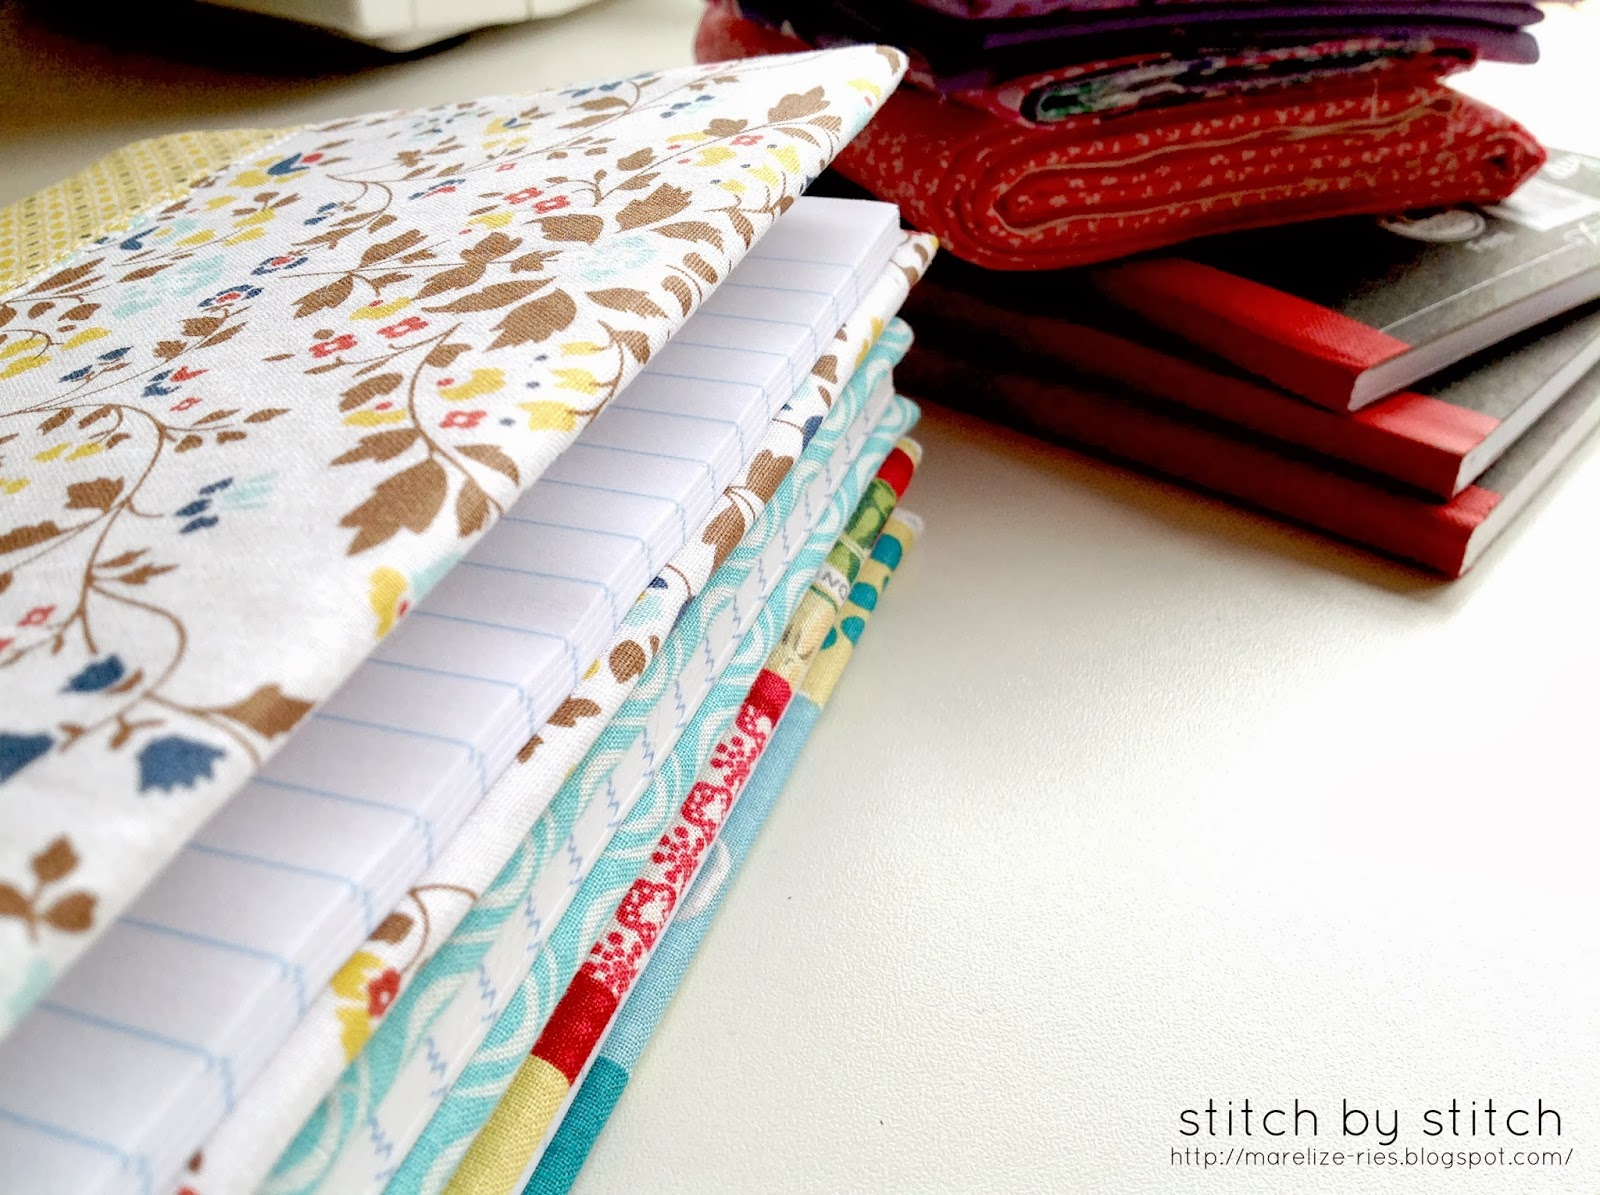 Cover Book In Fabric : Stitch by fabric book cover tutorial